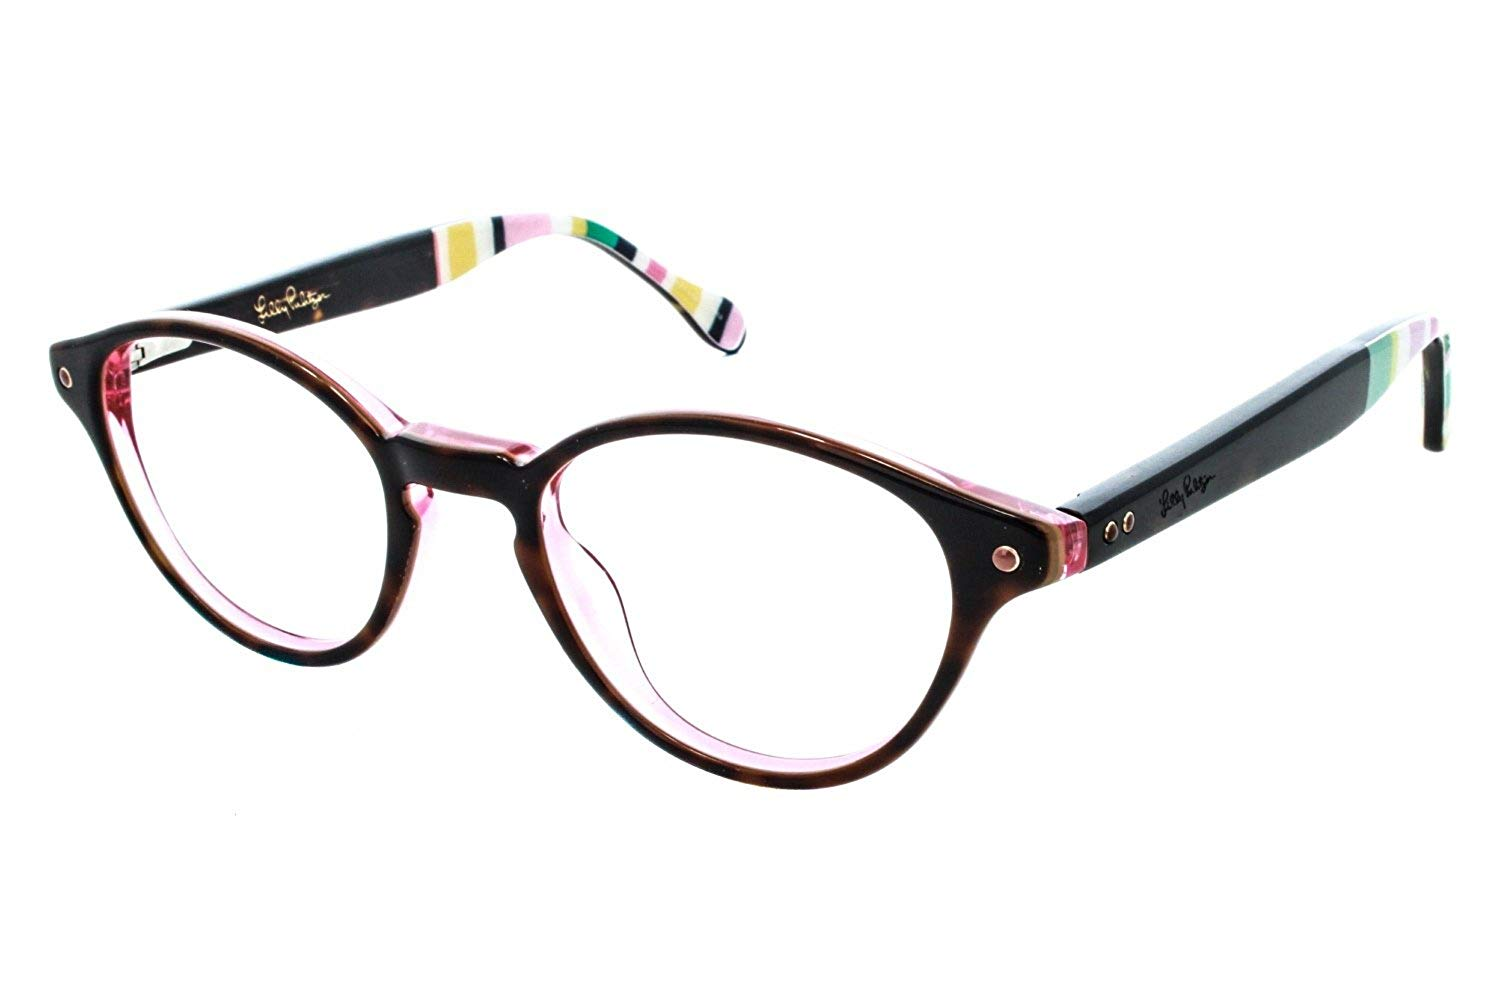 590931ab8eed Get Quotations · LILLY PULITZER Eyeglasses ALLAIRE Tortoise 45MM